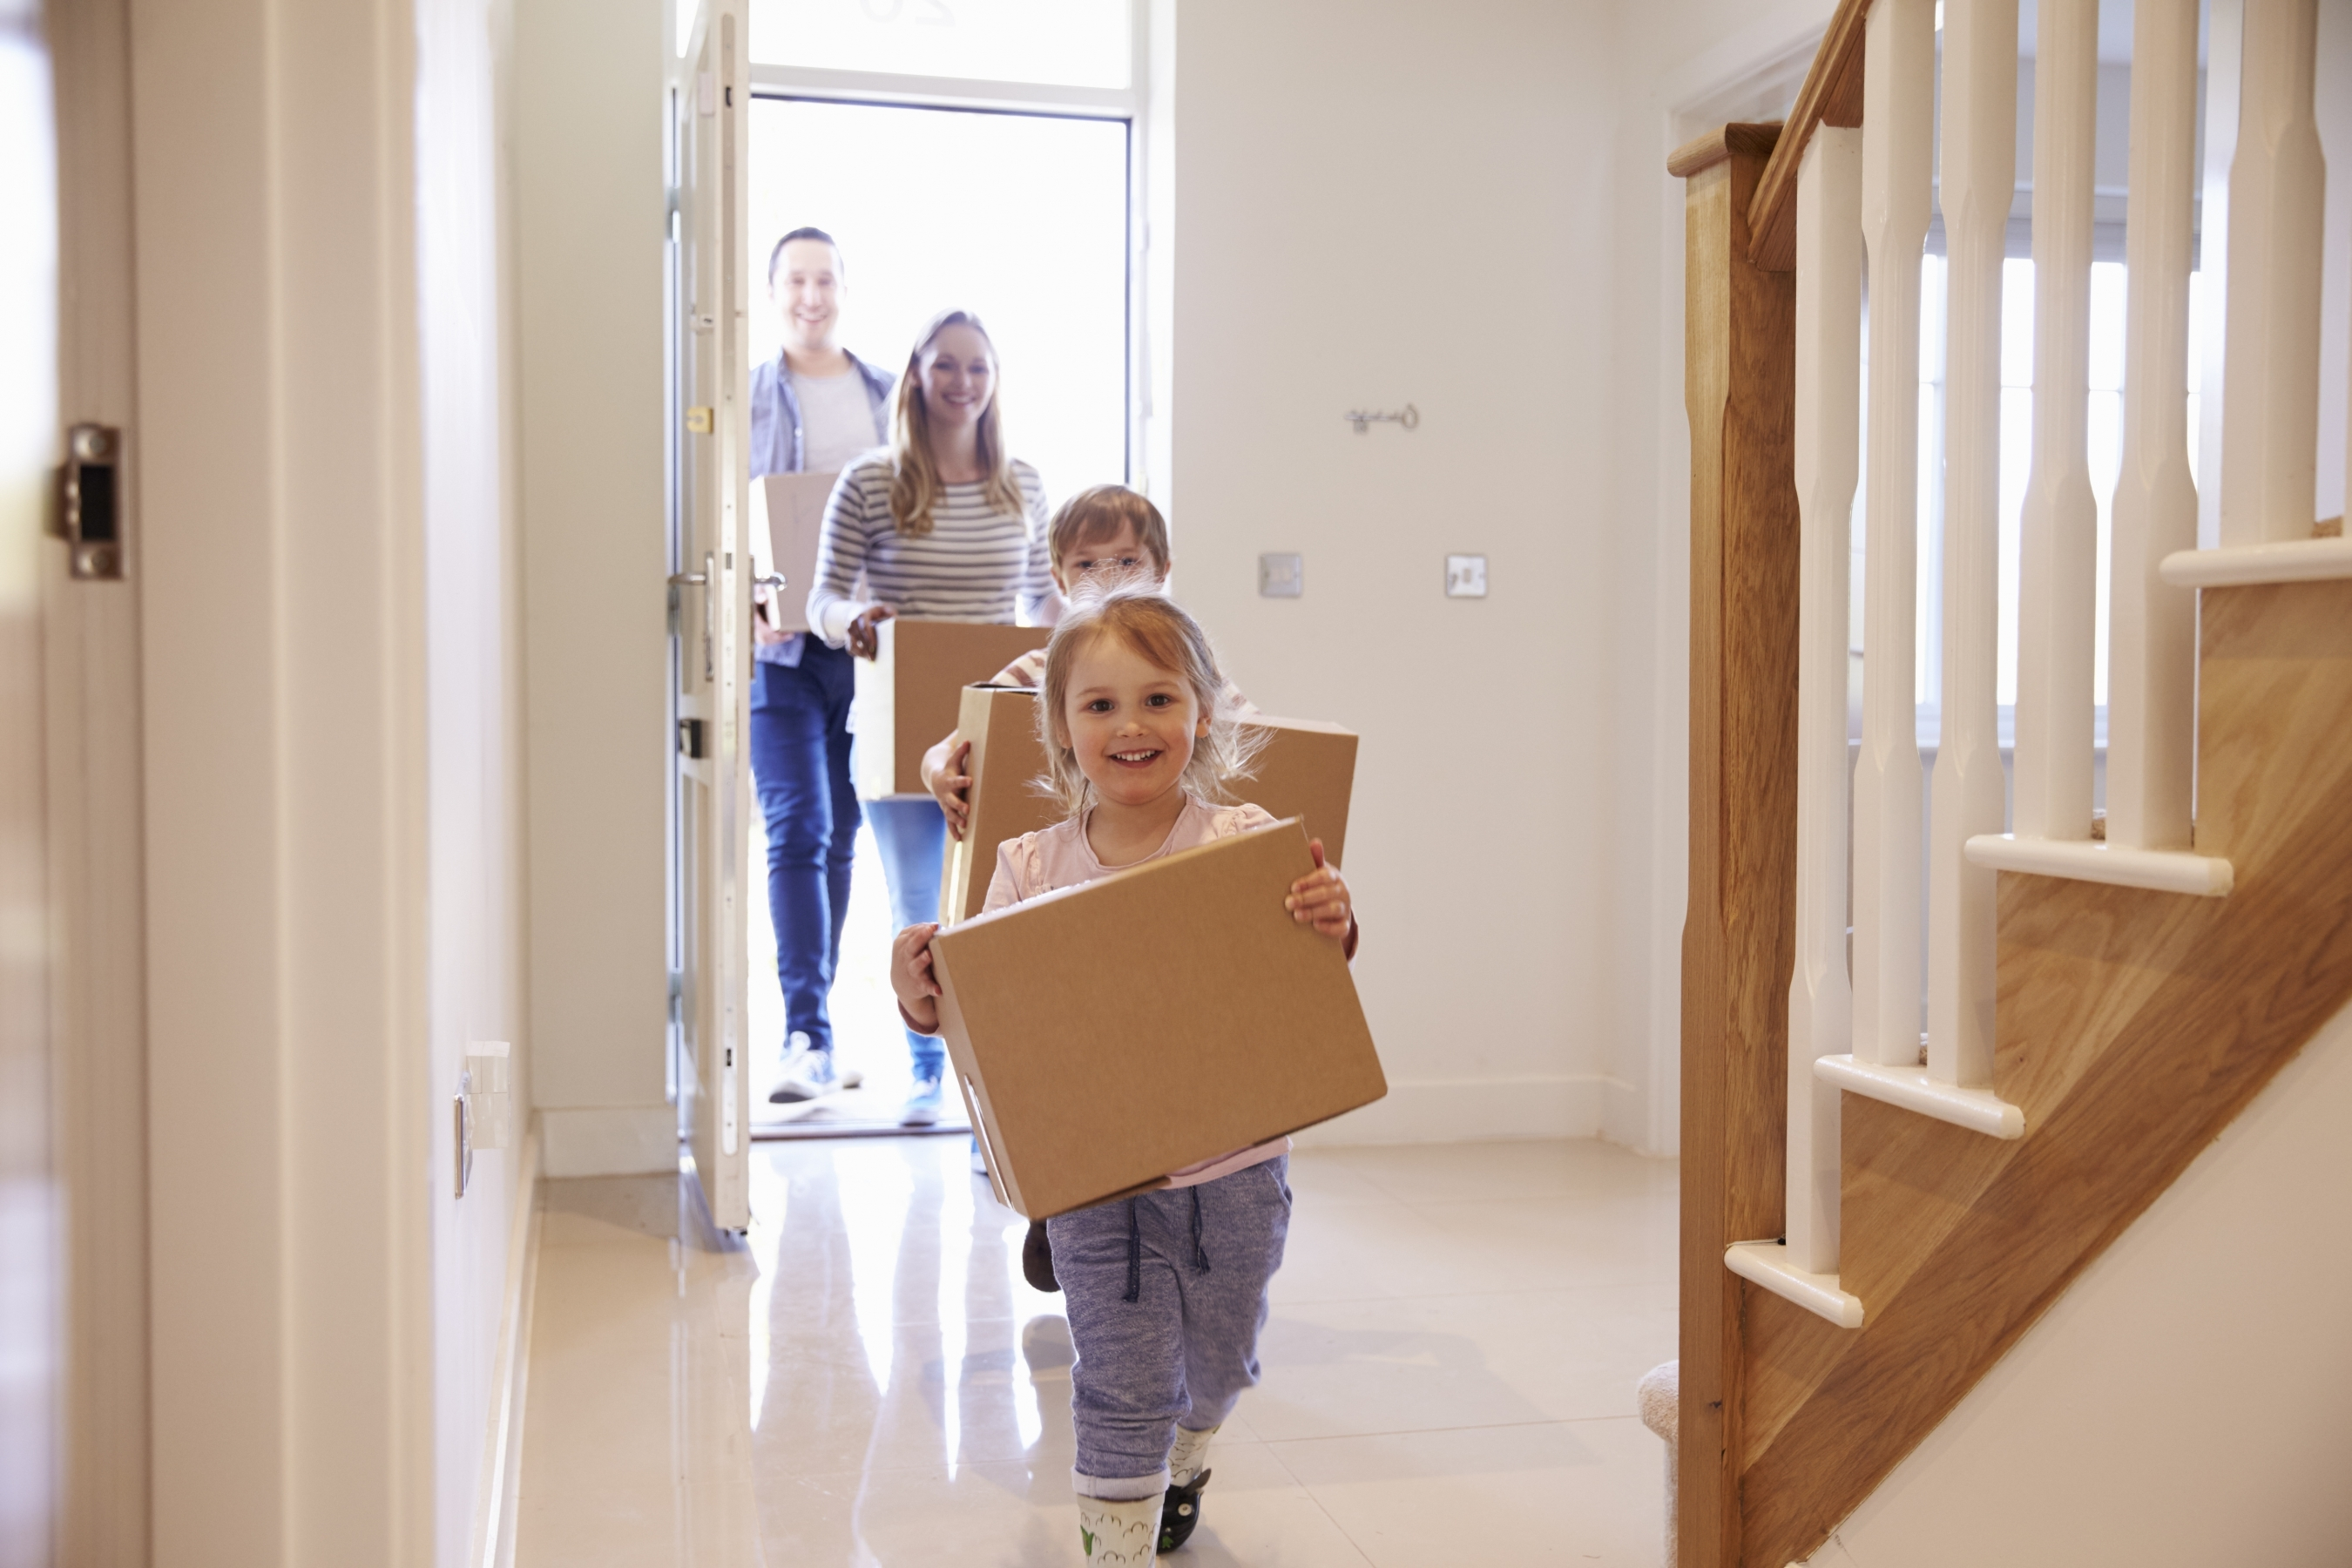 We can't wait to get you into your new home!